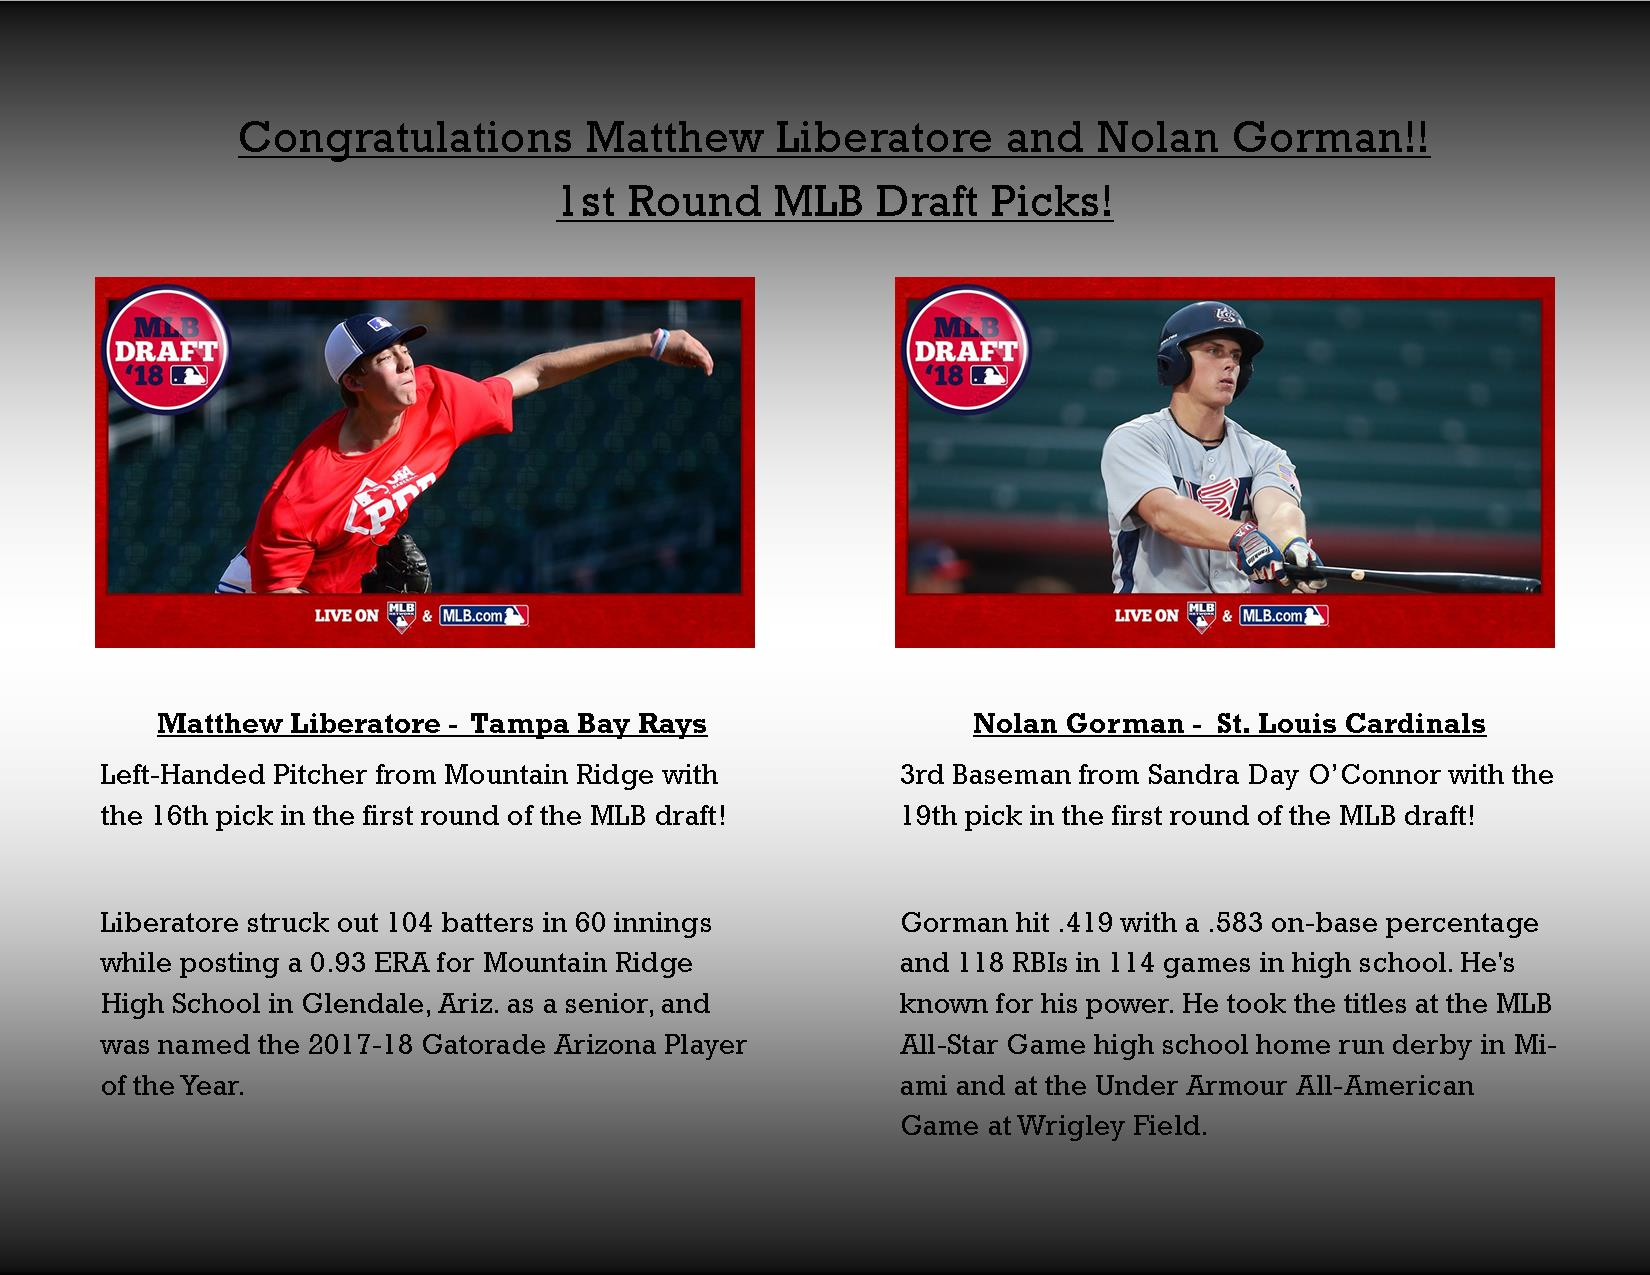 Congratulations Matthew Liberatore & Nolan Gorman, 1st Round MLB Draft Picks!